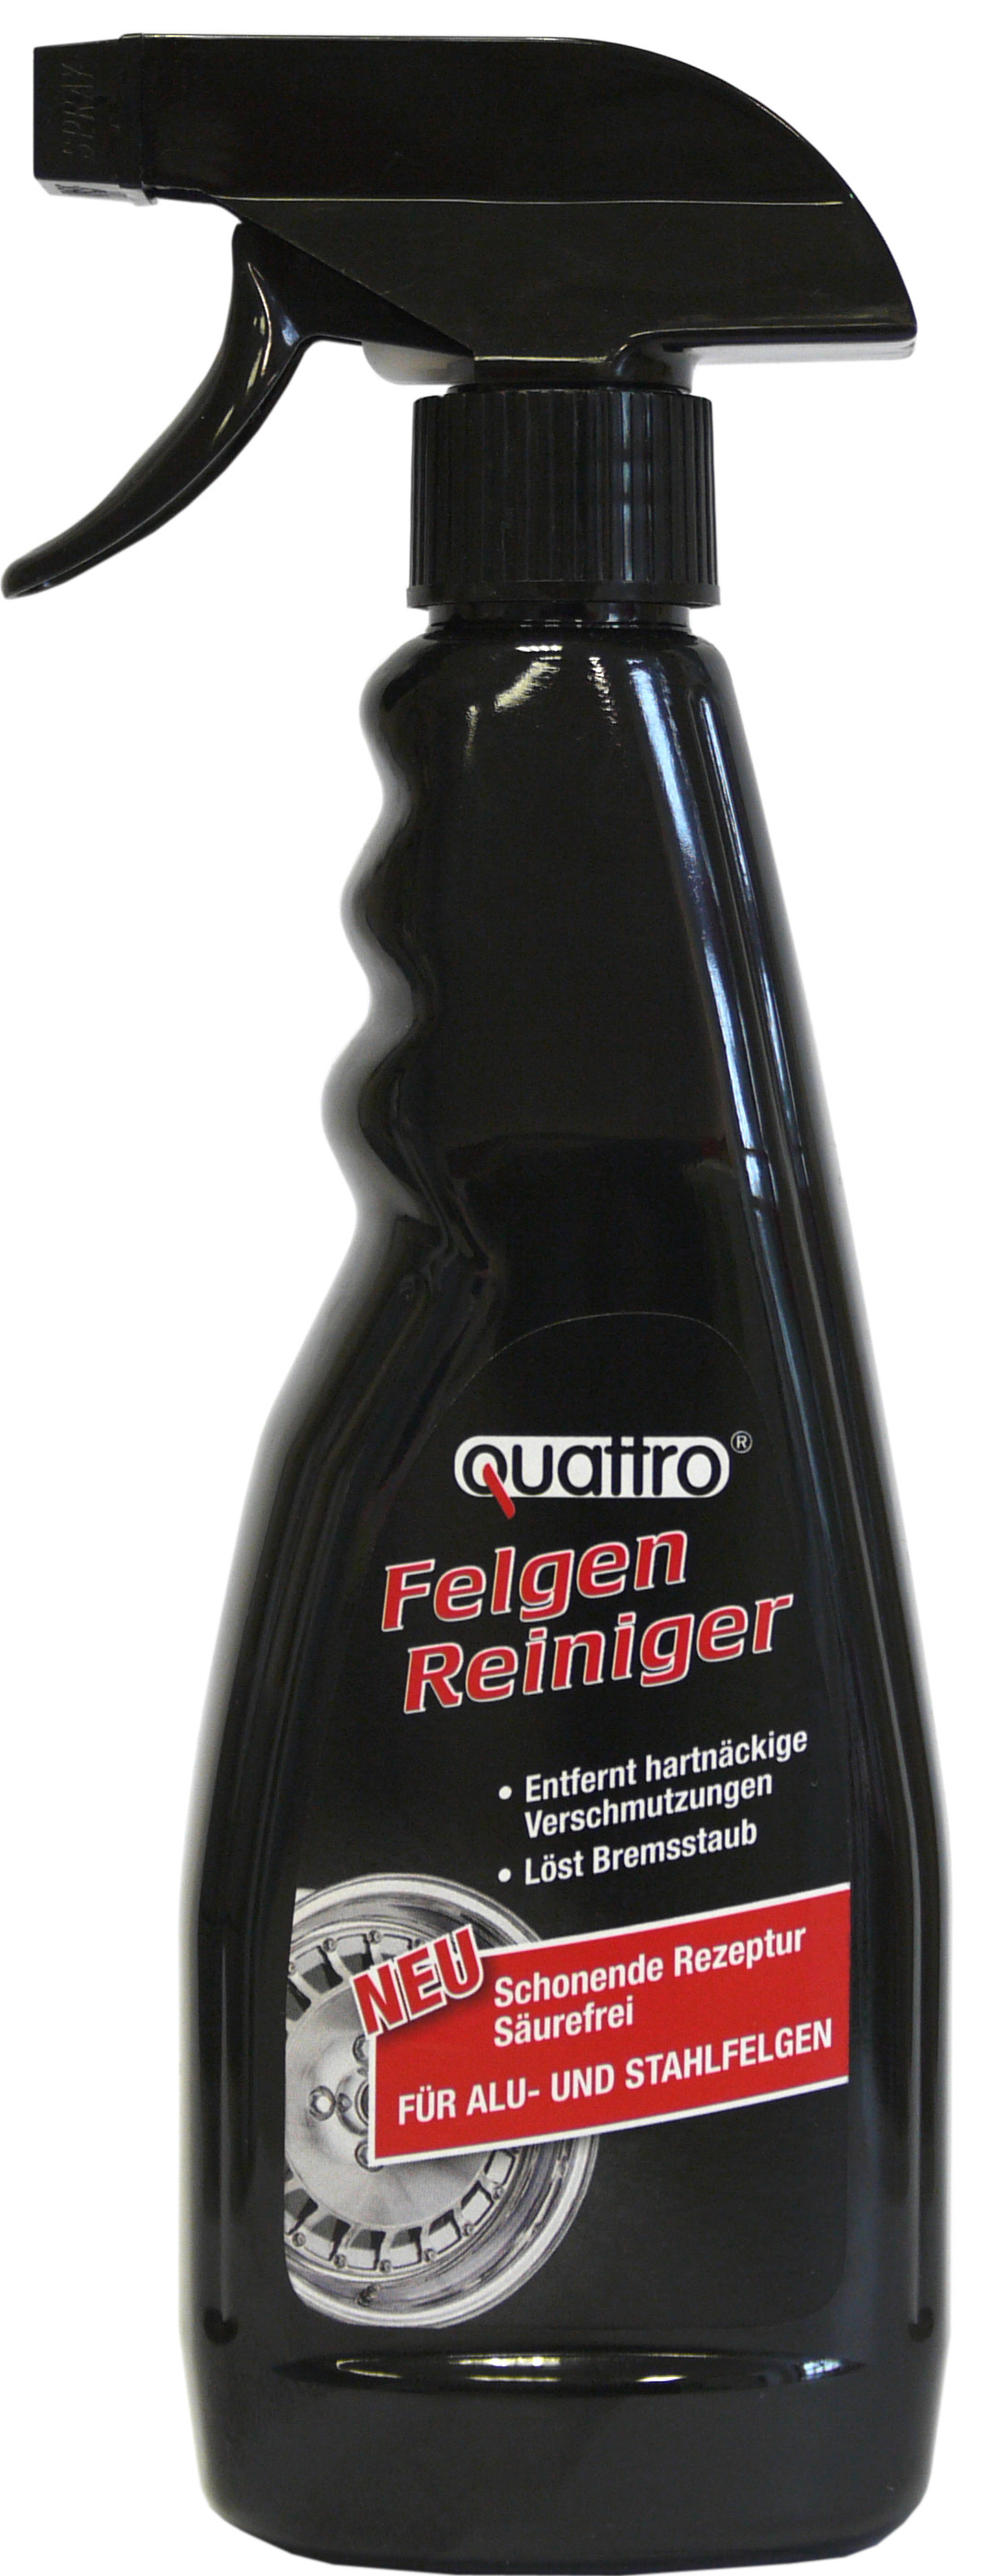 00709 - wheel rim cleaner spray 500 ml